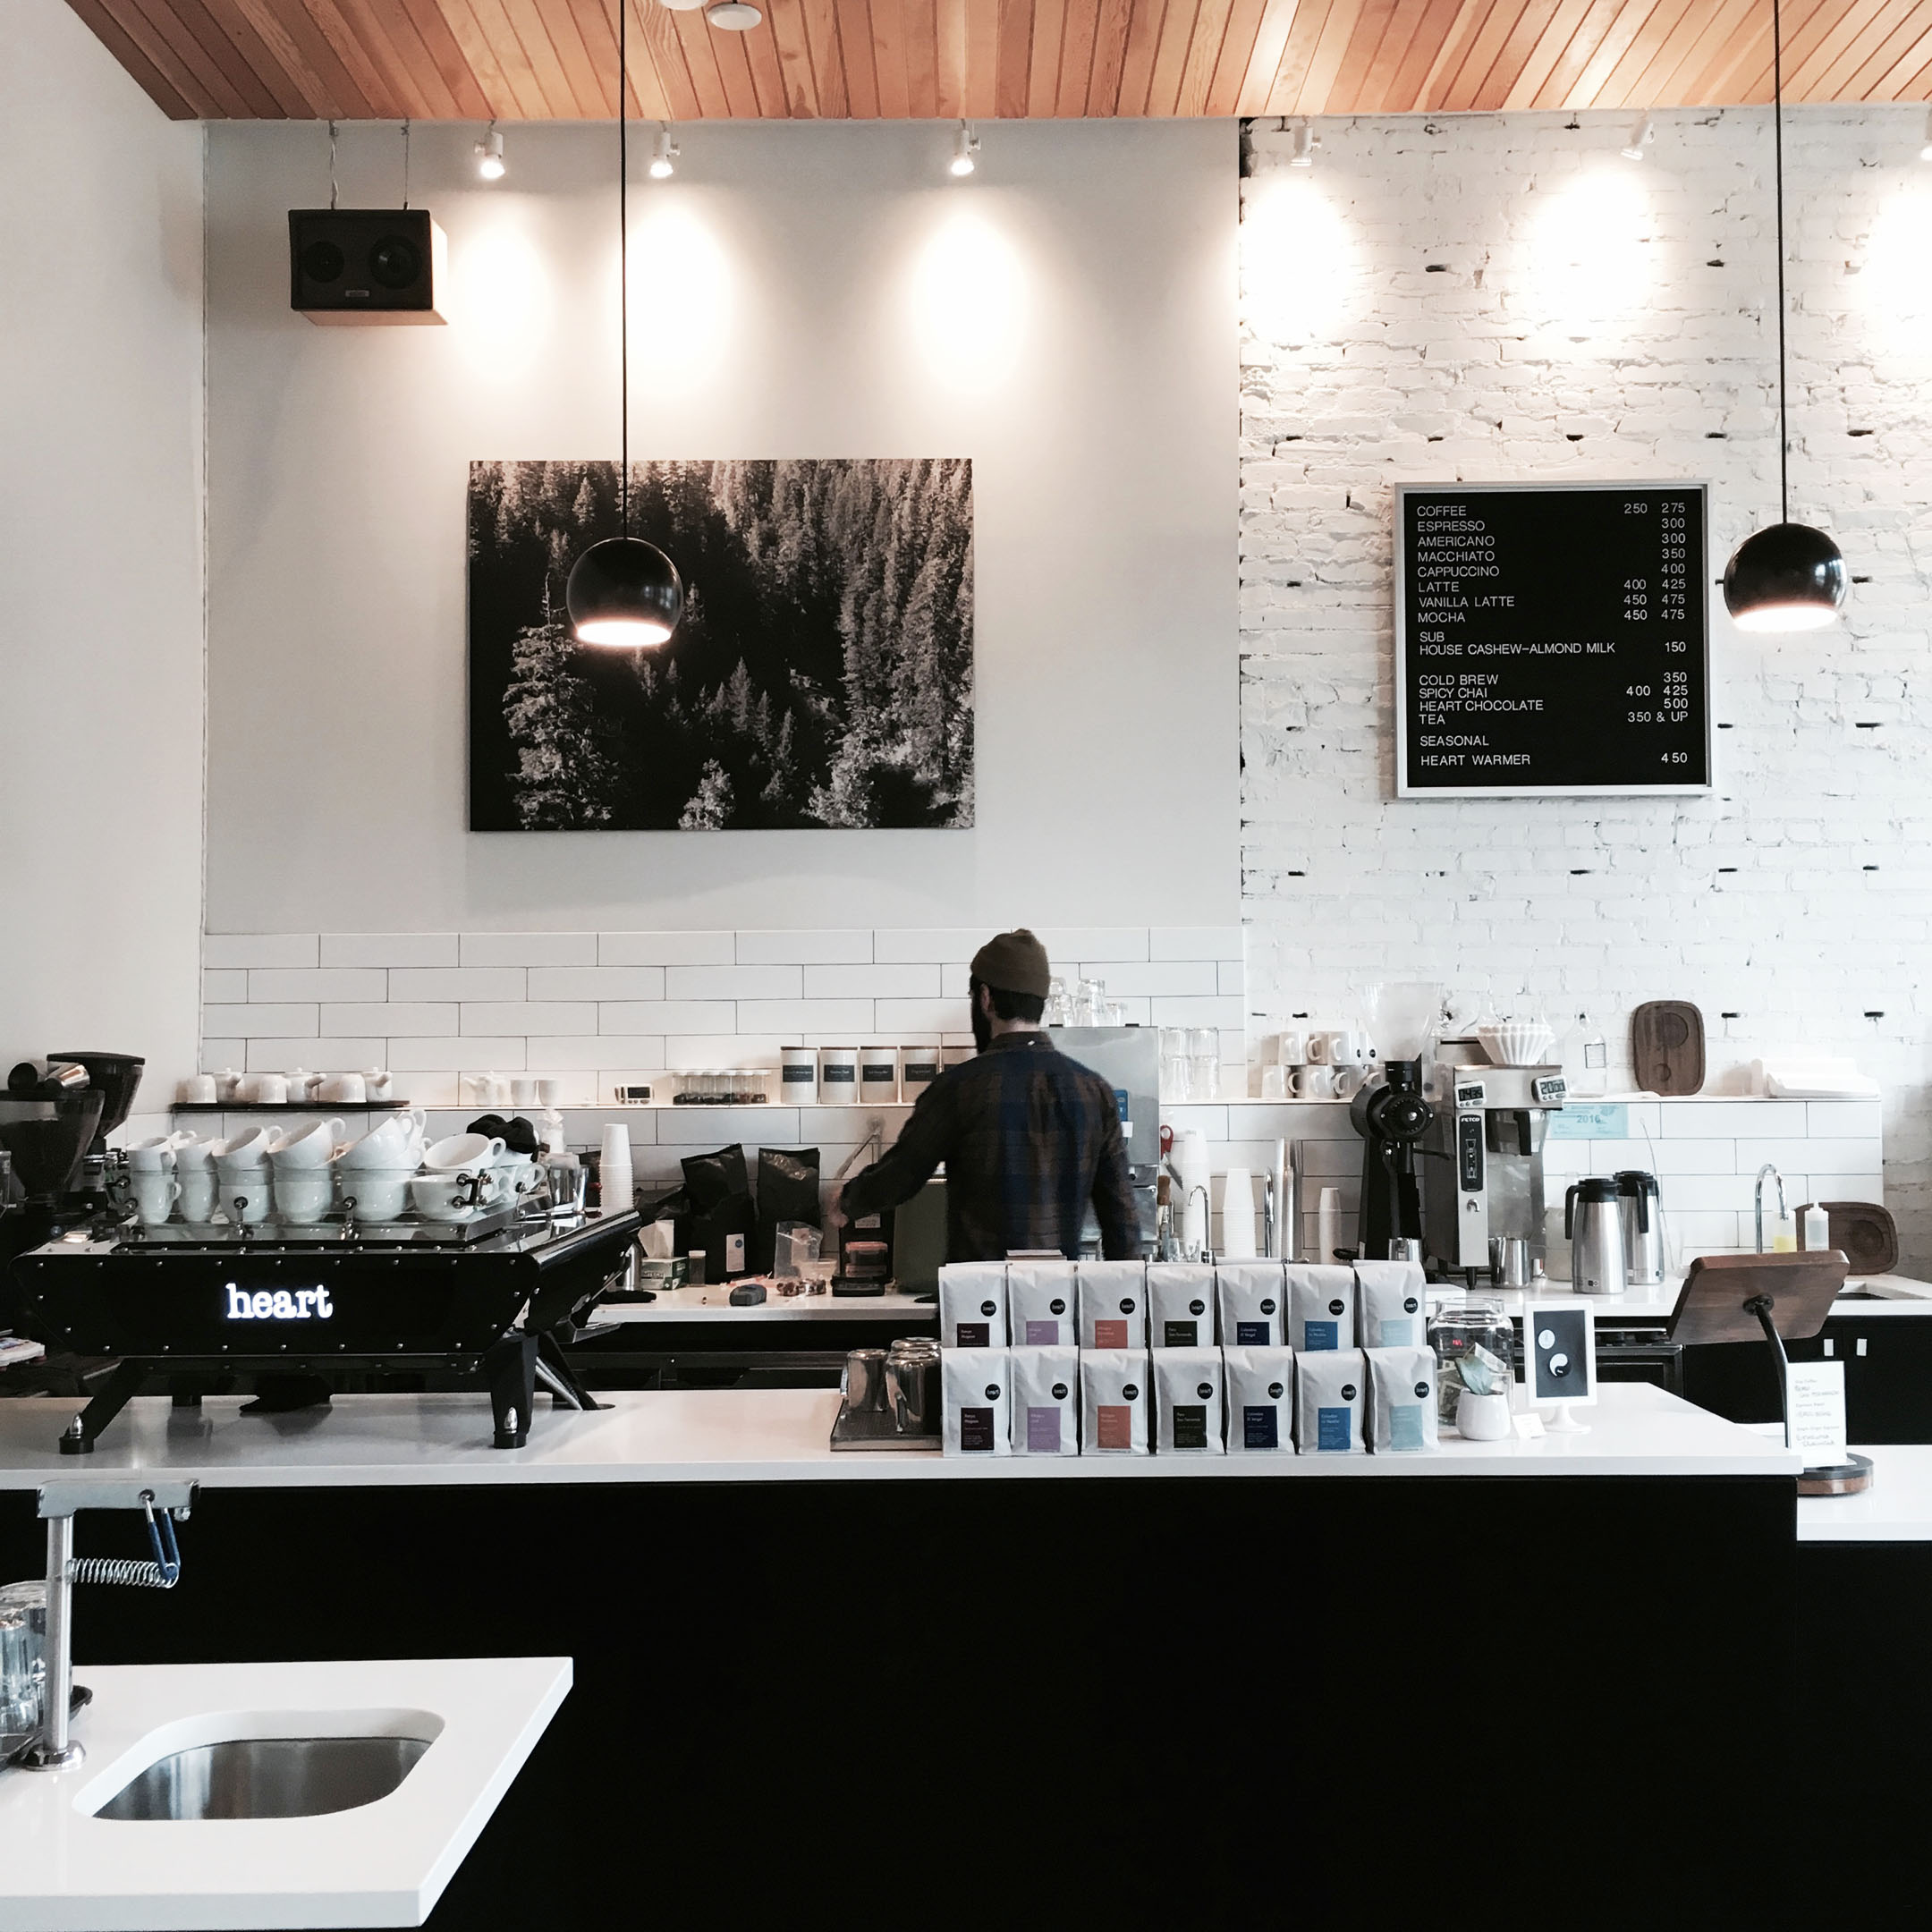 Heart Coffee Roasters - Crystalin Marie has a great article on  Instagram-worthy spots  on her blog.